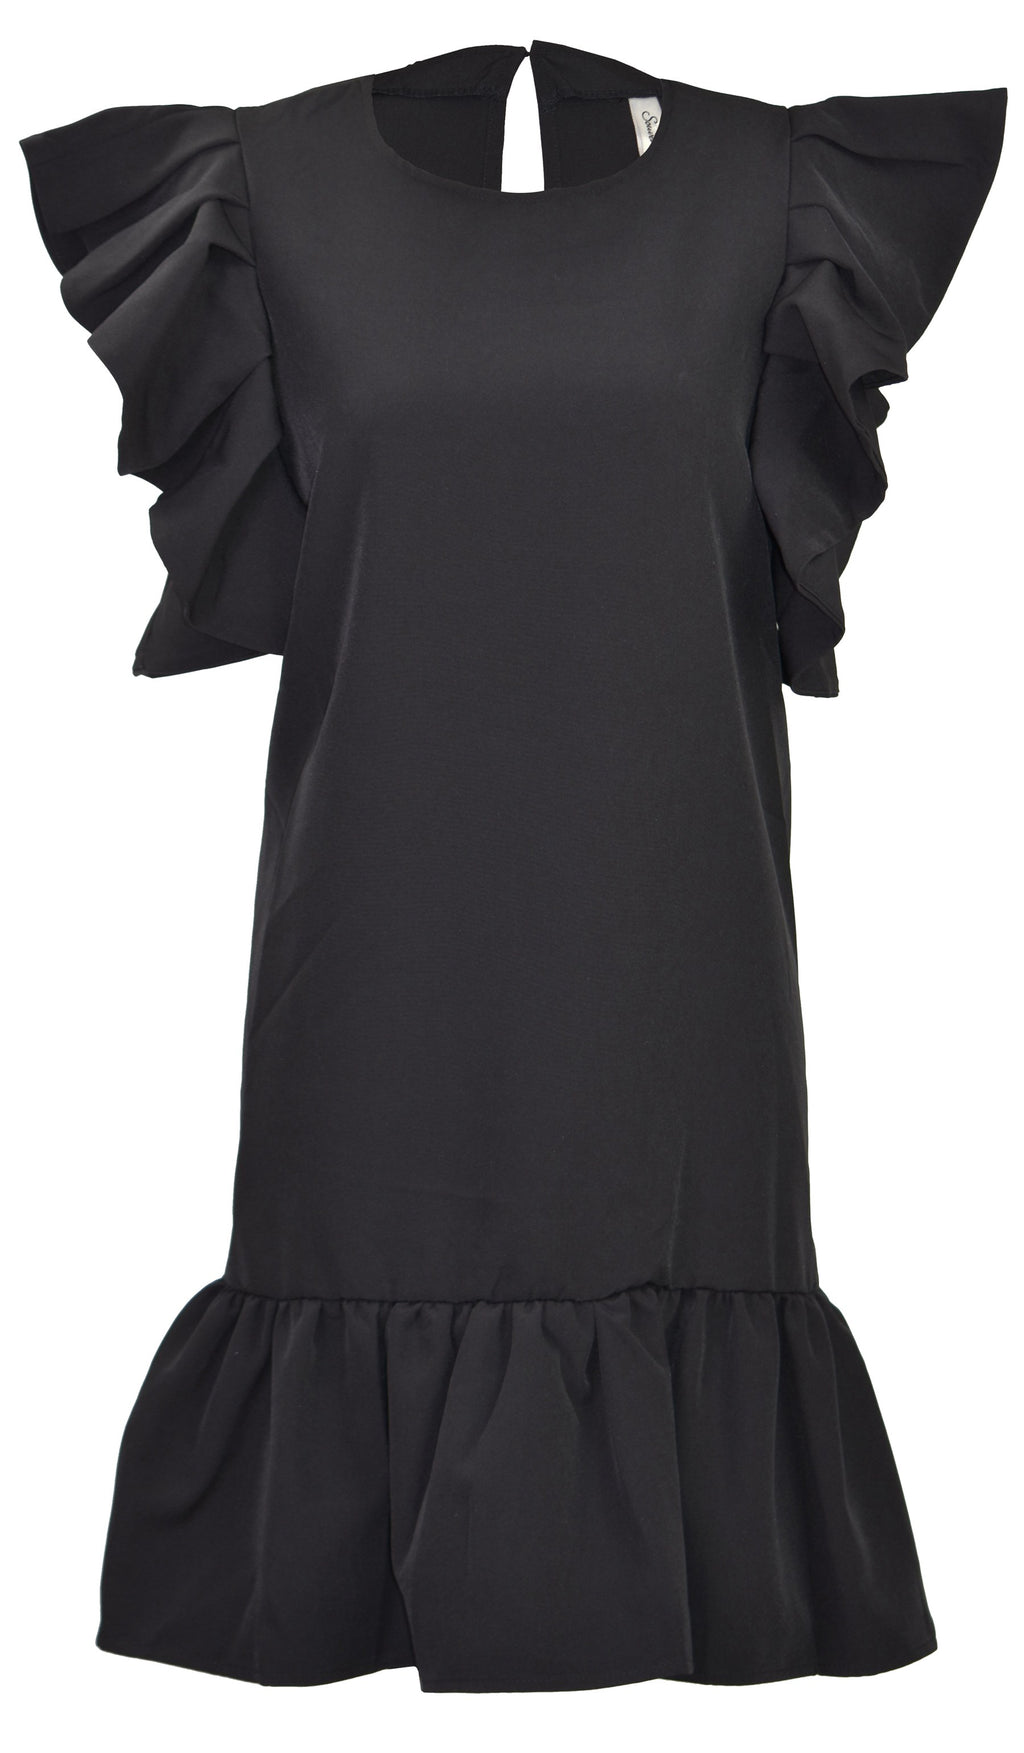 Ruffled crepe one piece black dress